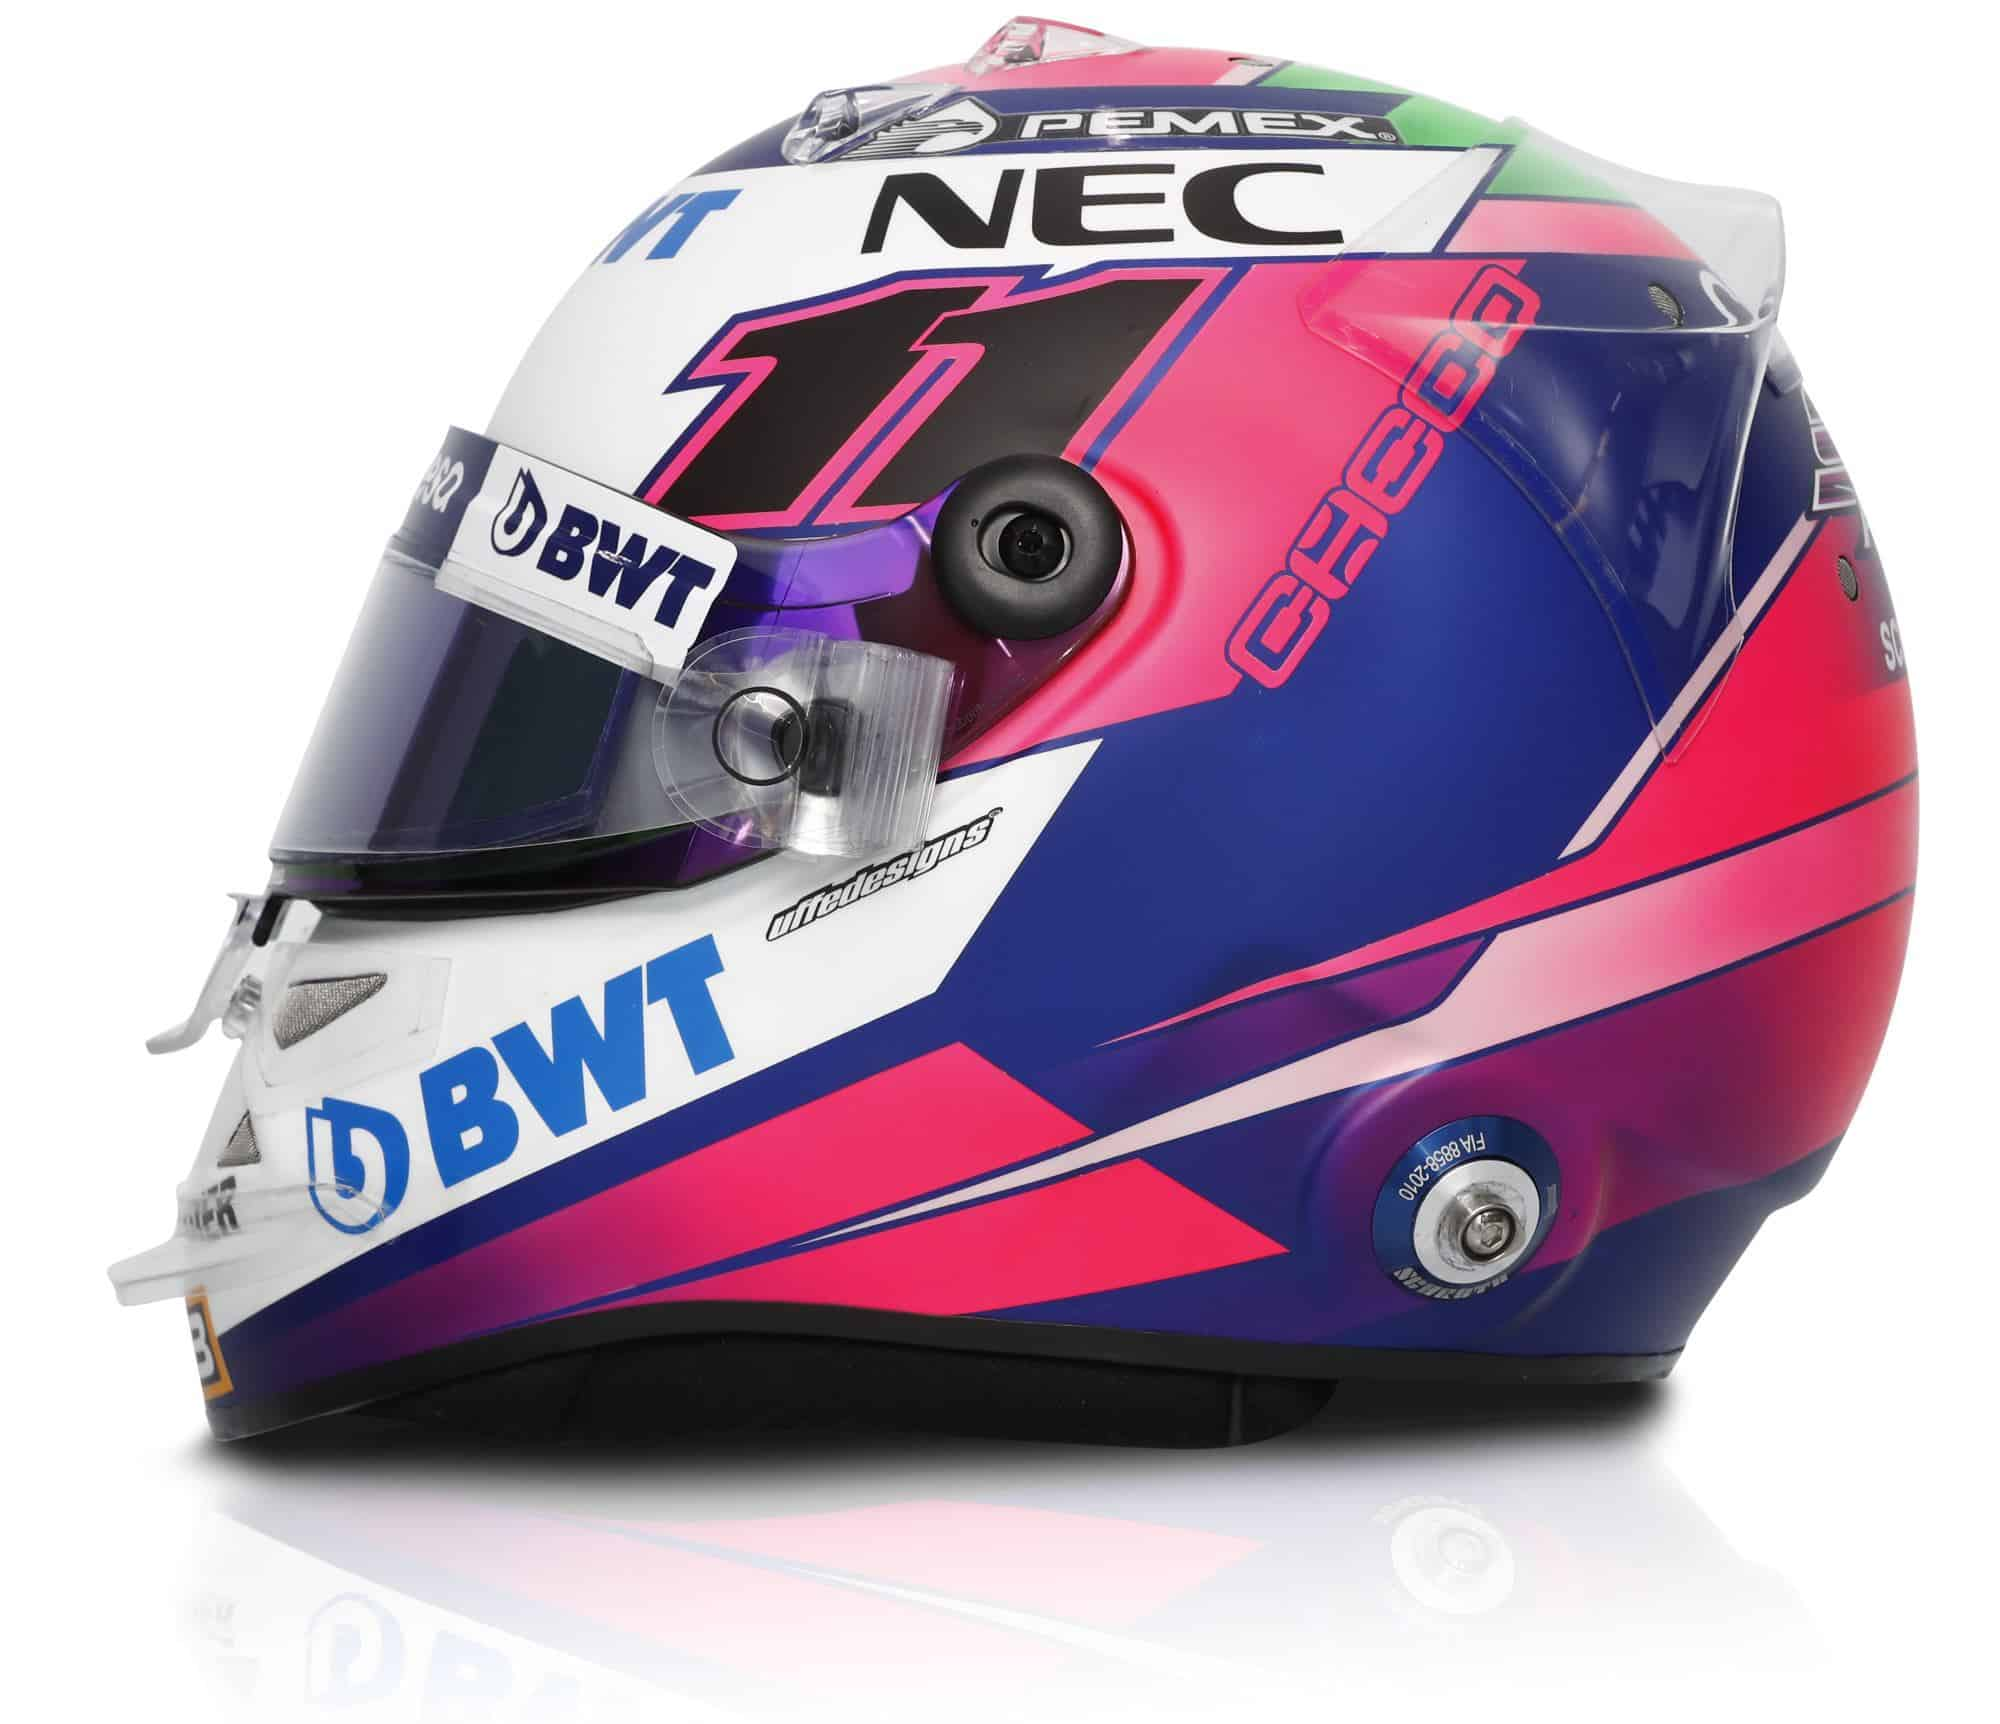 2019 Sport Pesa Racing Point Sergio Perez helmet left side Photo Racing Point Edited by MAXF1net